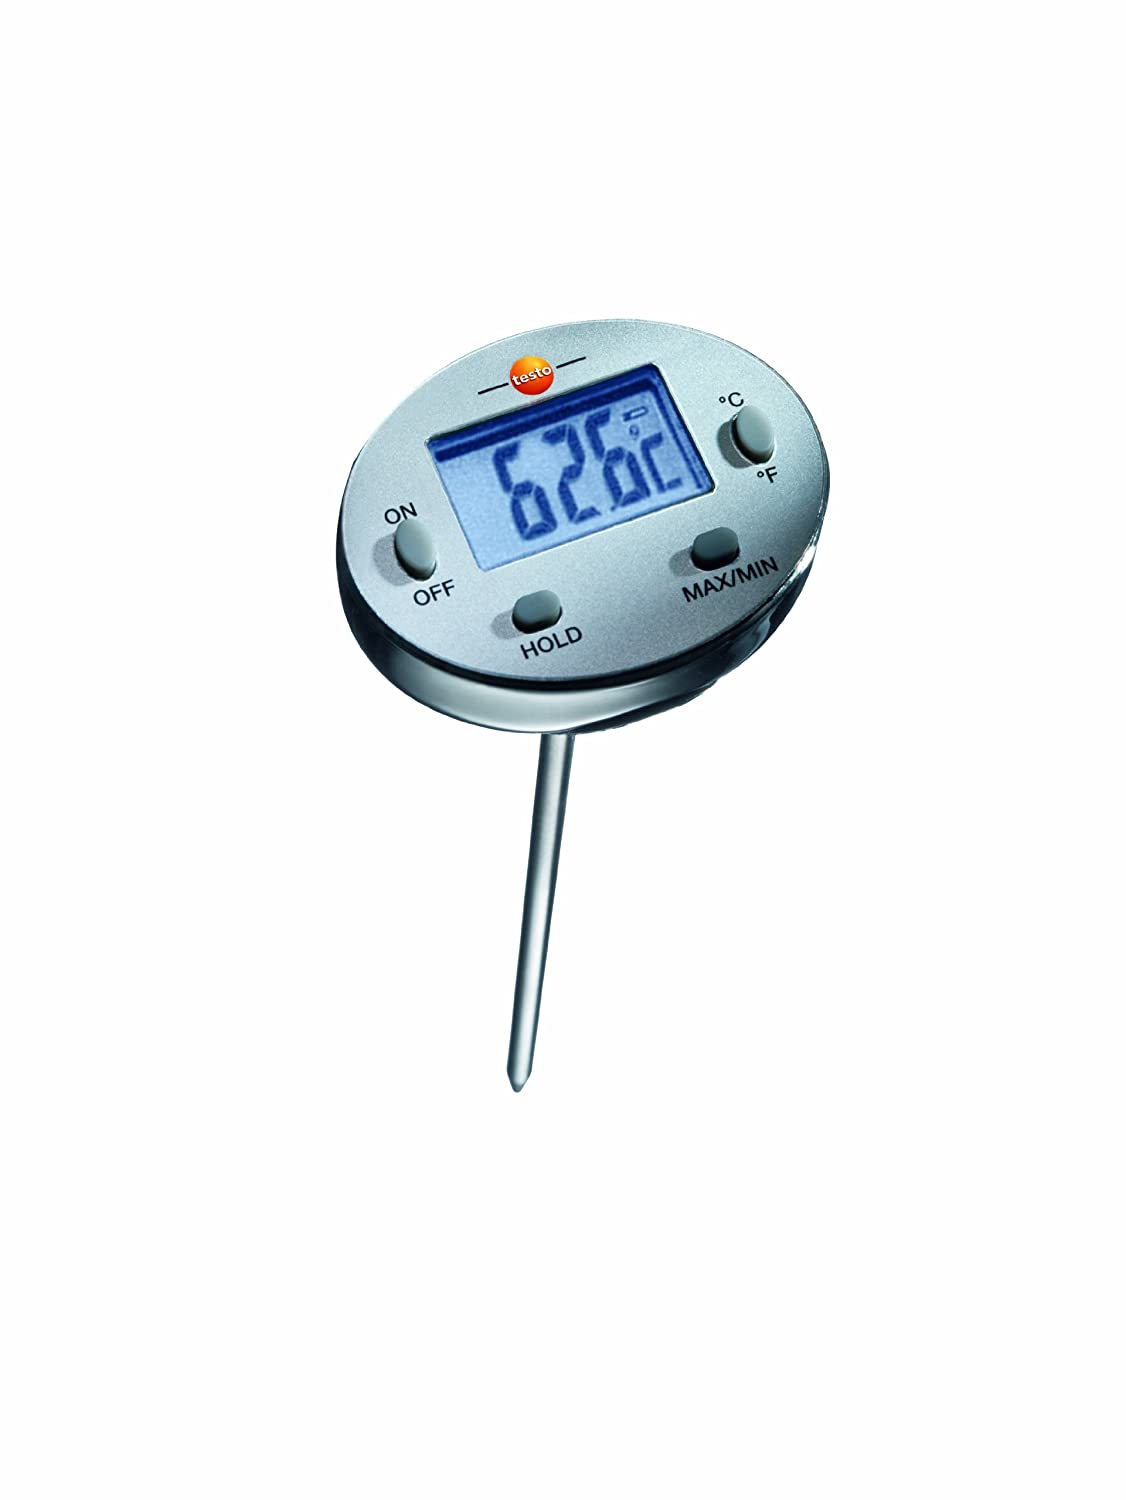 Waterproof mini probe thermometer Testo 0560 1113